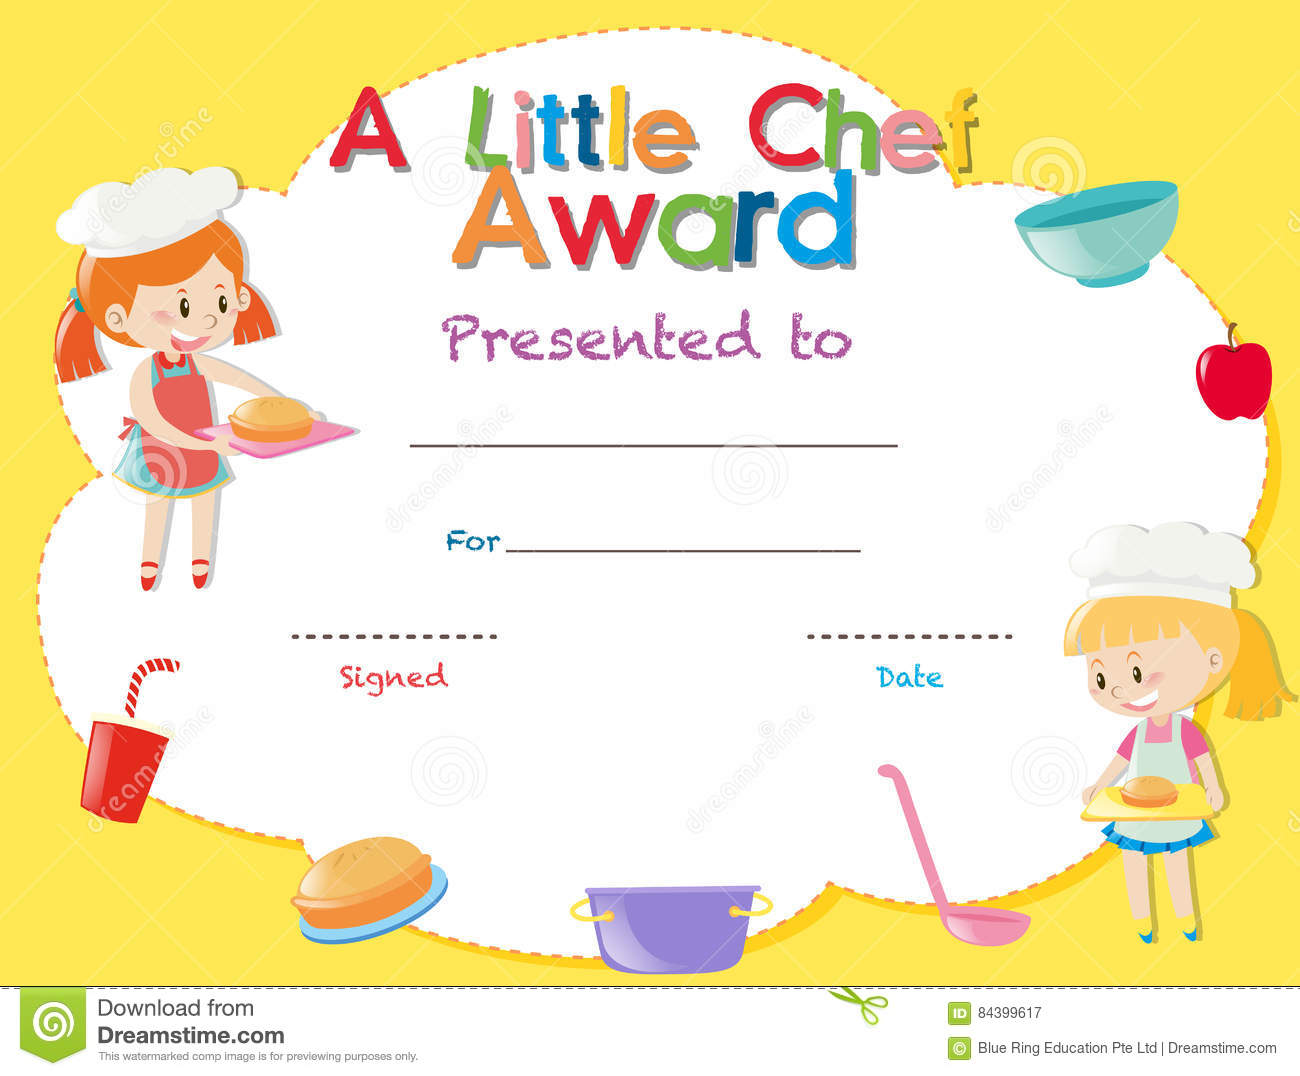 Kids Certificate Templates Choice Image Templates Example Free Certificate  Templates Kids Image Collections Templates Example Talent  Certificate Template For Kids